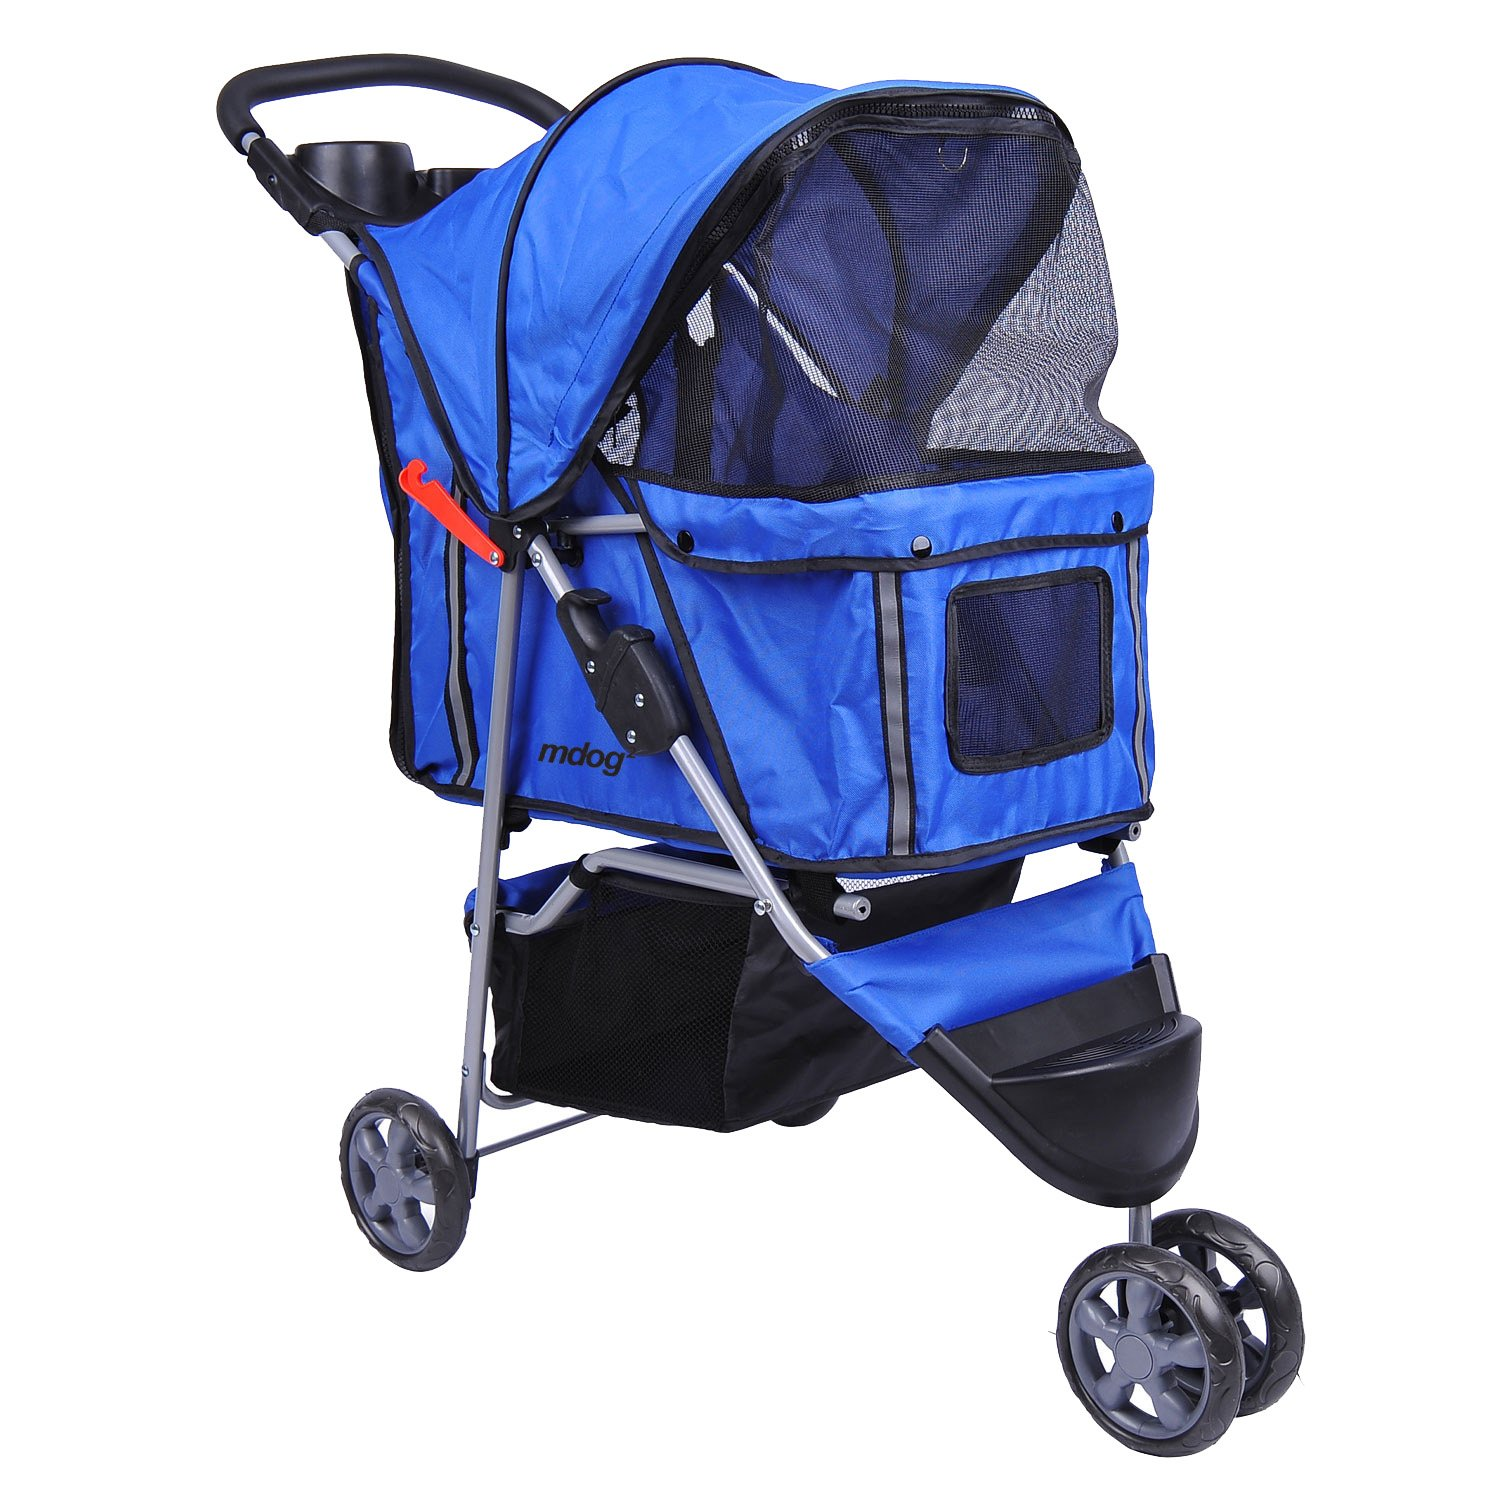 MDOG2 MK0015A 3-Wheel Front and Rear Entry Pet Stroller, Blue